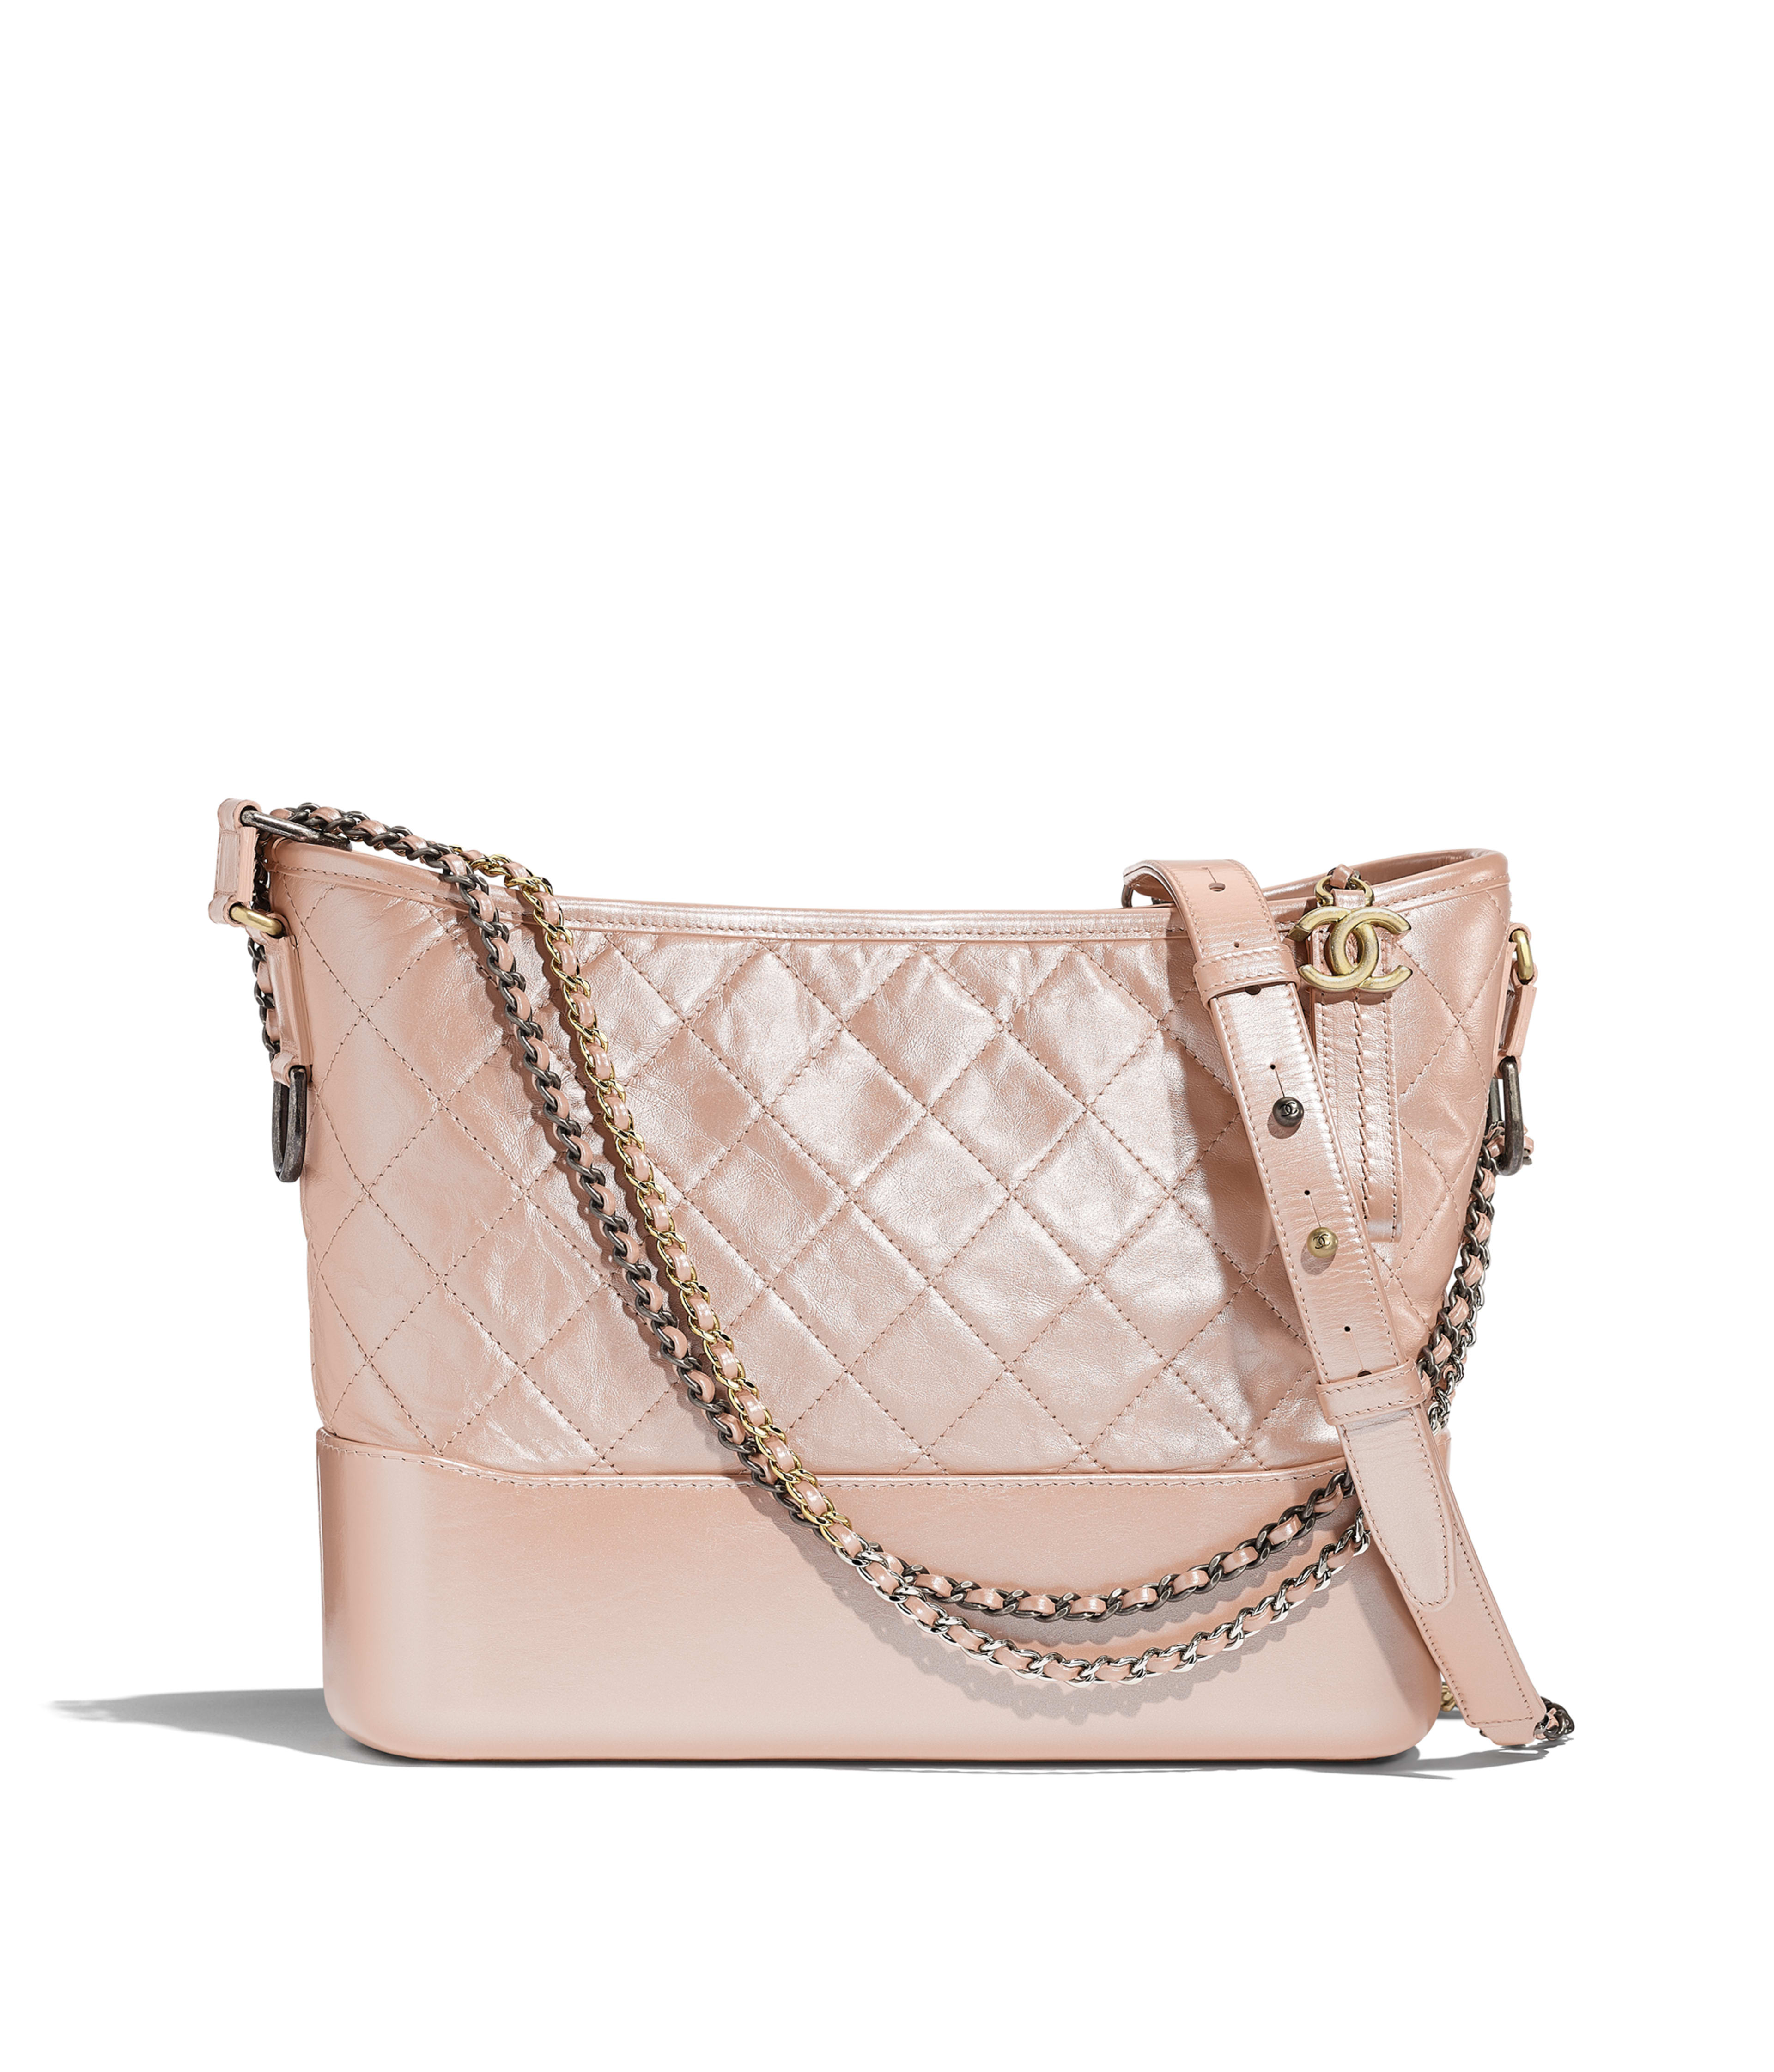 dee73d381c9758 CHANEL'S GABRIELLE Hobo Bag Iridescent Aged Calfskin, Gold-Tone &  Silver-Tone Metal, Light Pink Ref. A93824B00395N4464